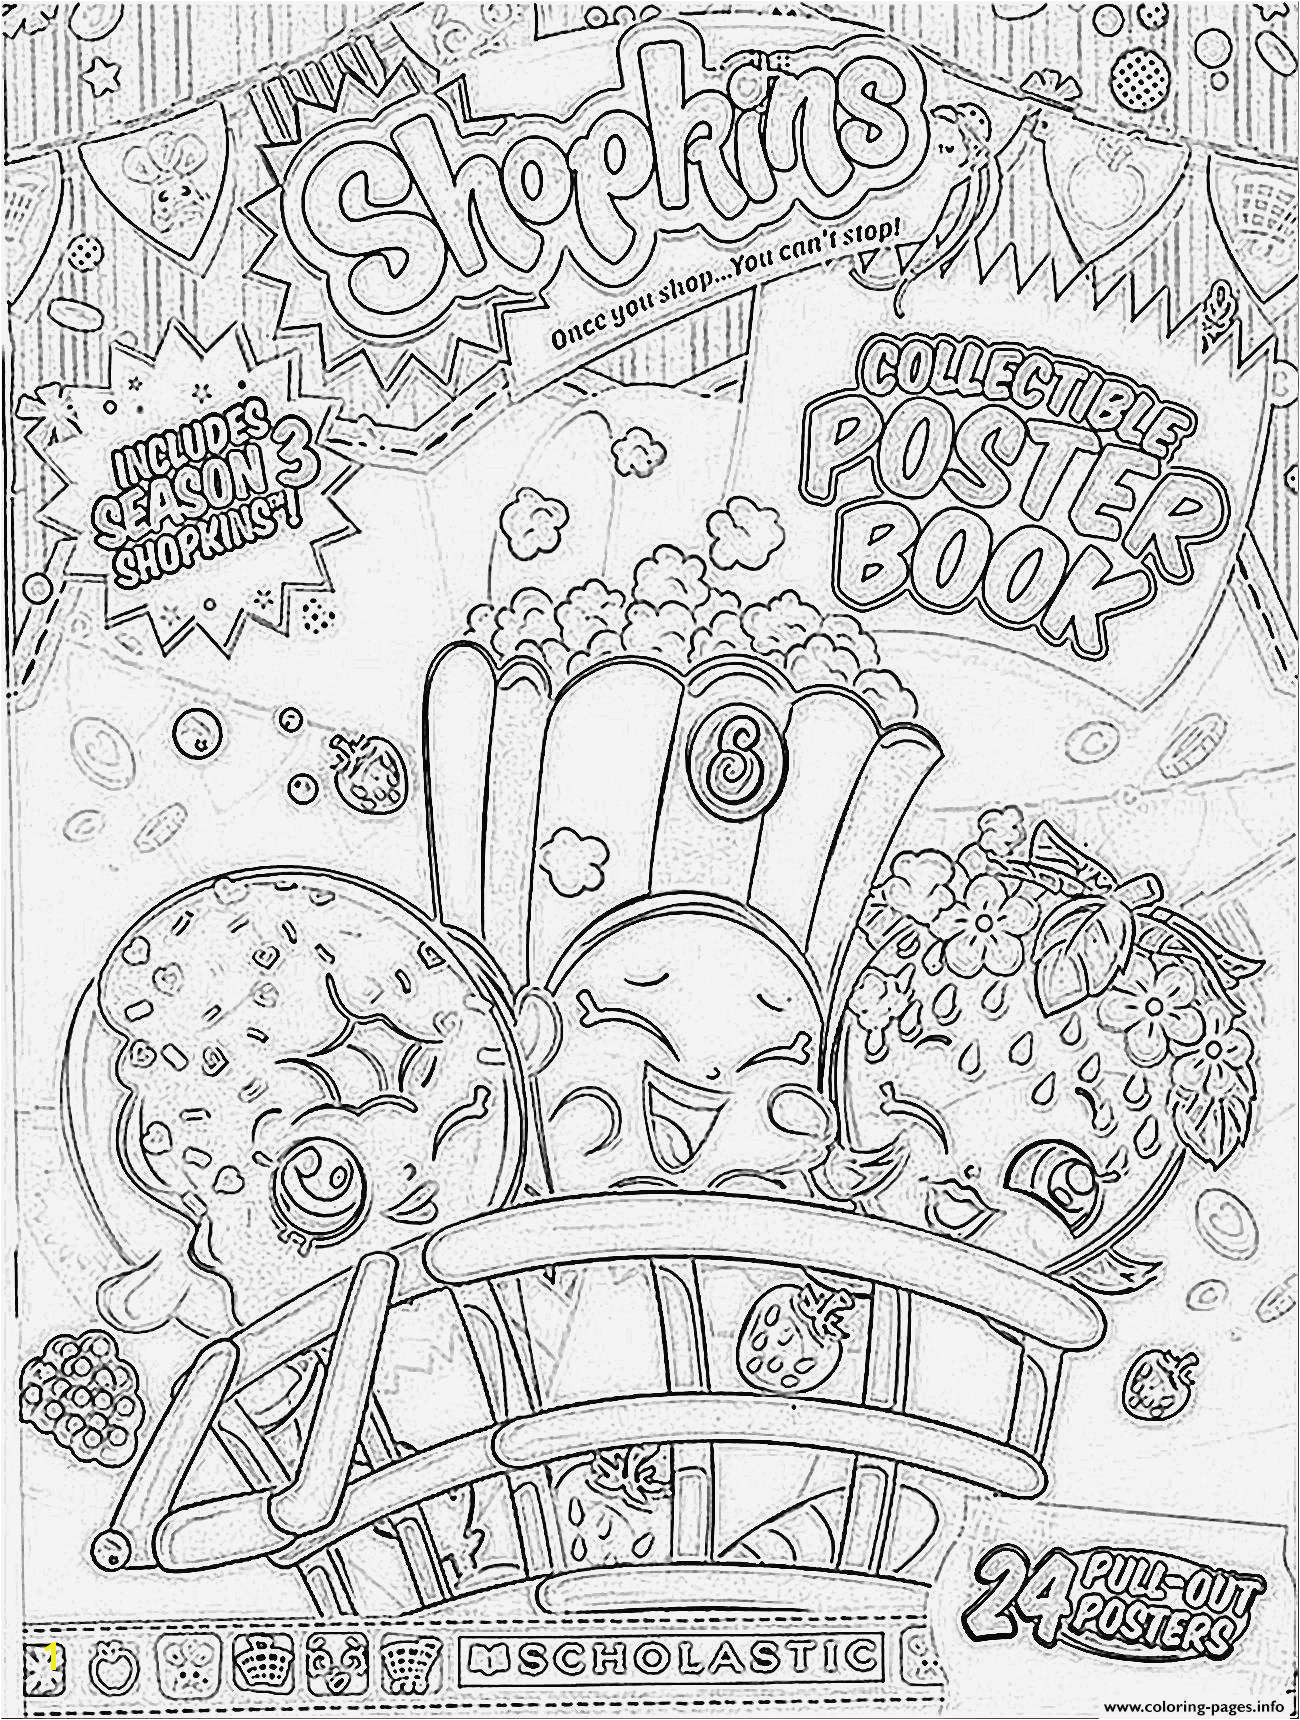 Electrical Safety Coloring Pages Unique Best Coloring Pages Picture Page 2 149 21 Awesome